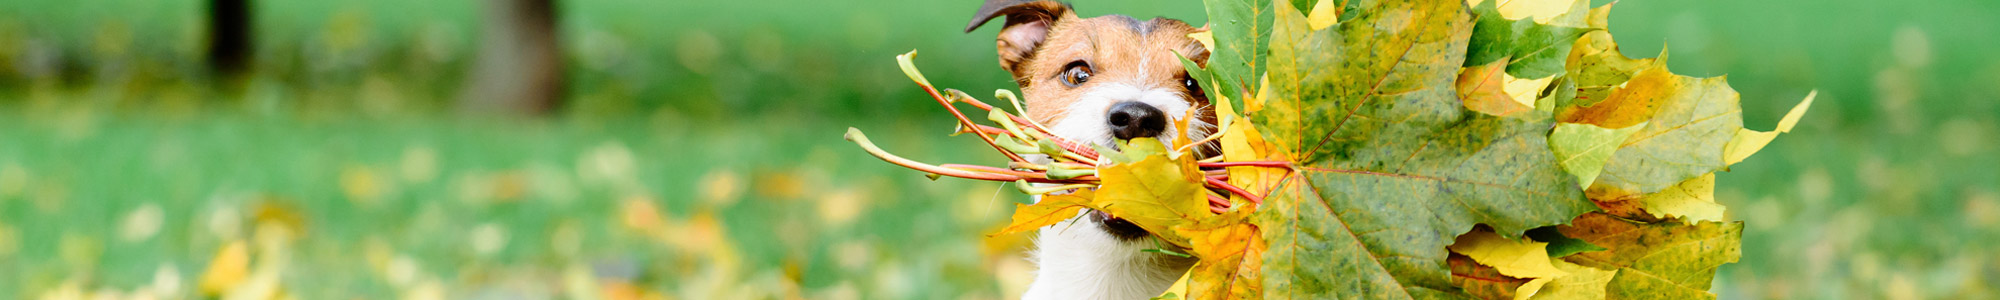 cute dog with a collection of fall leaves in its mouth